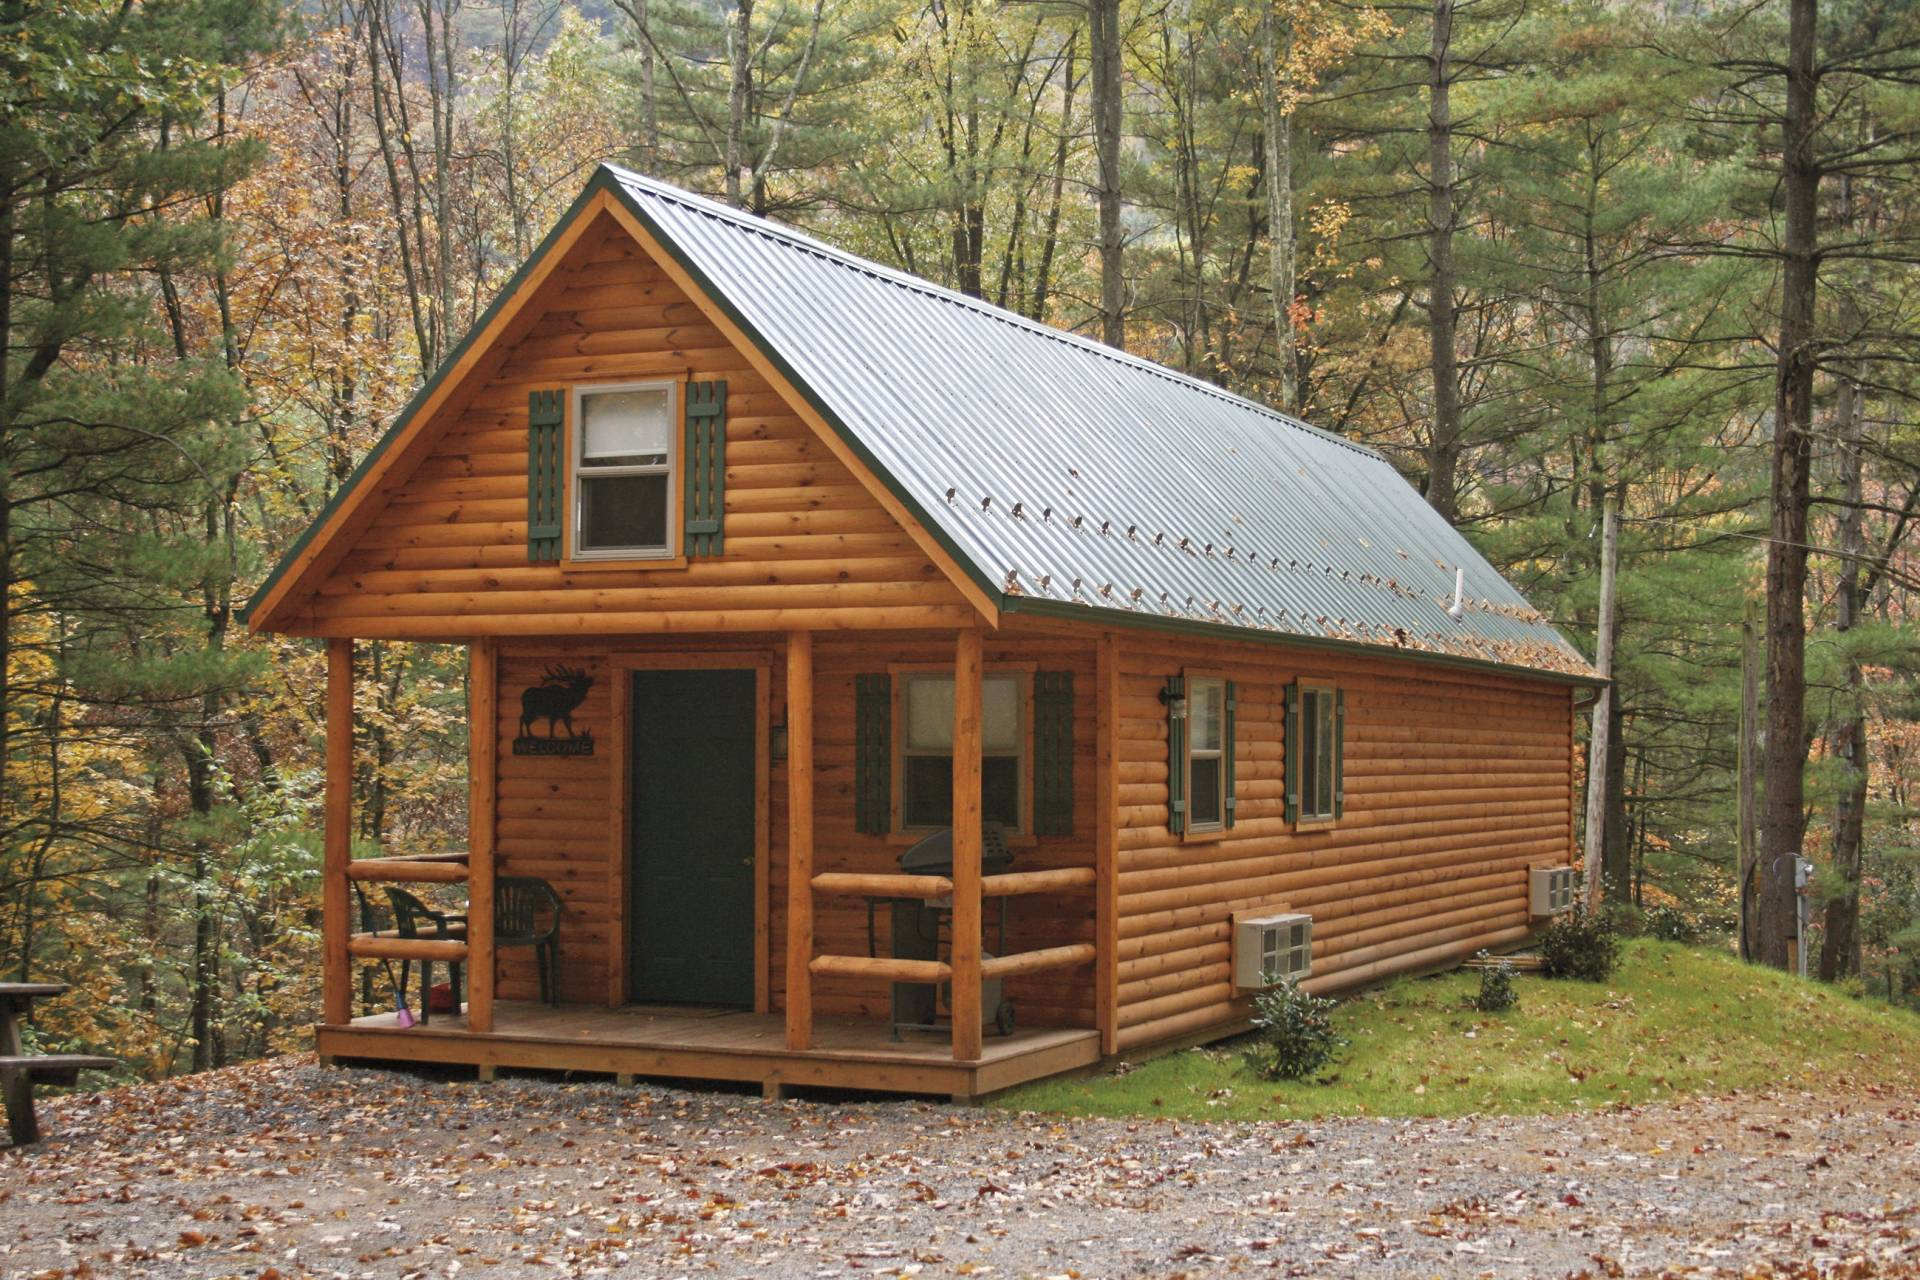 Adirondack tiny cabins manufactured in pa cozy cabins for Small cabins and cottages